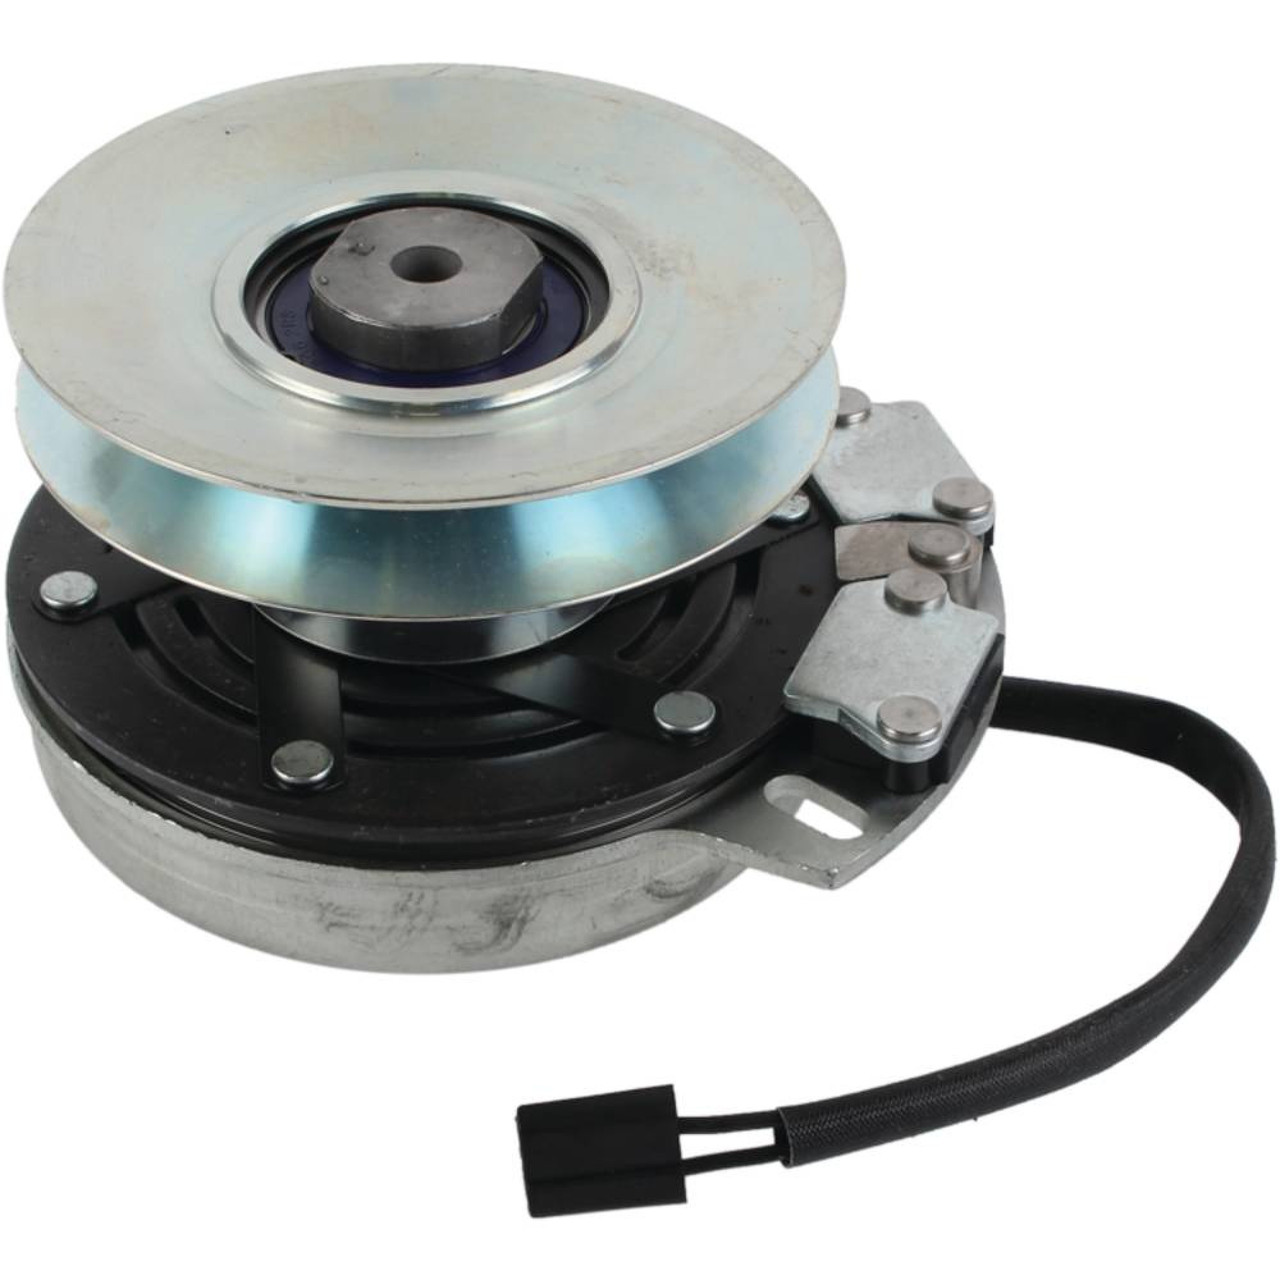 Xtreme Replacement Clutch For John Deere